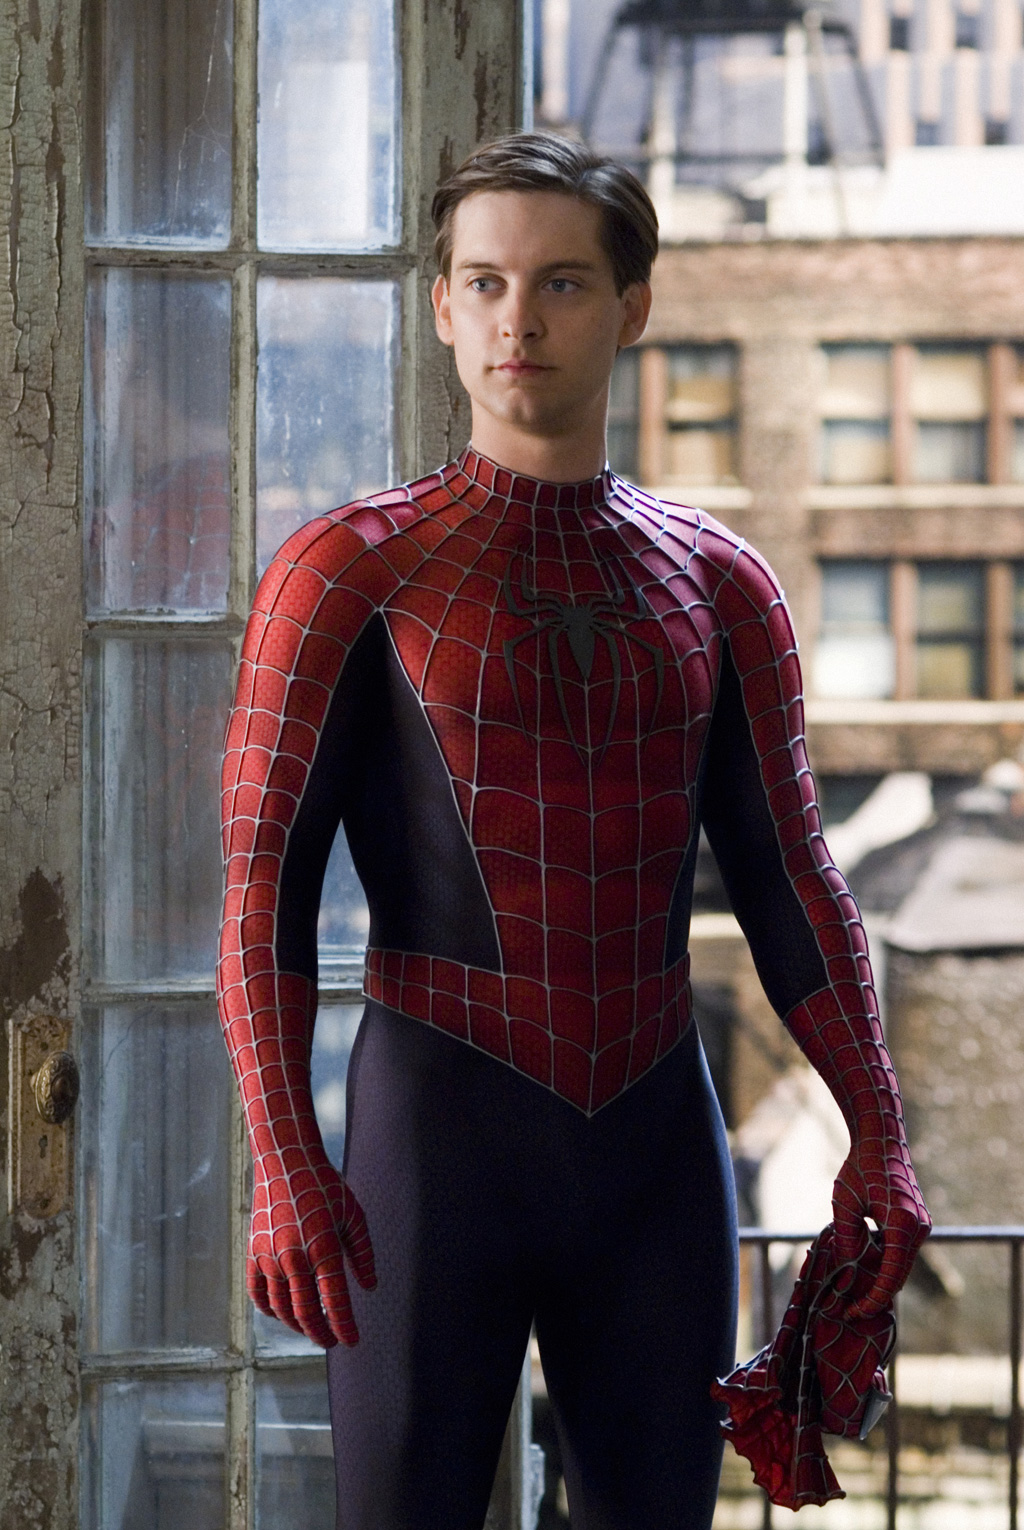 Tobey maguire black spiderman - photo#7